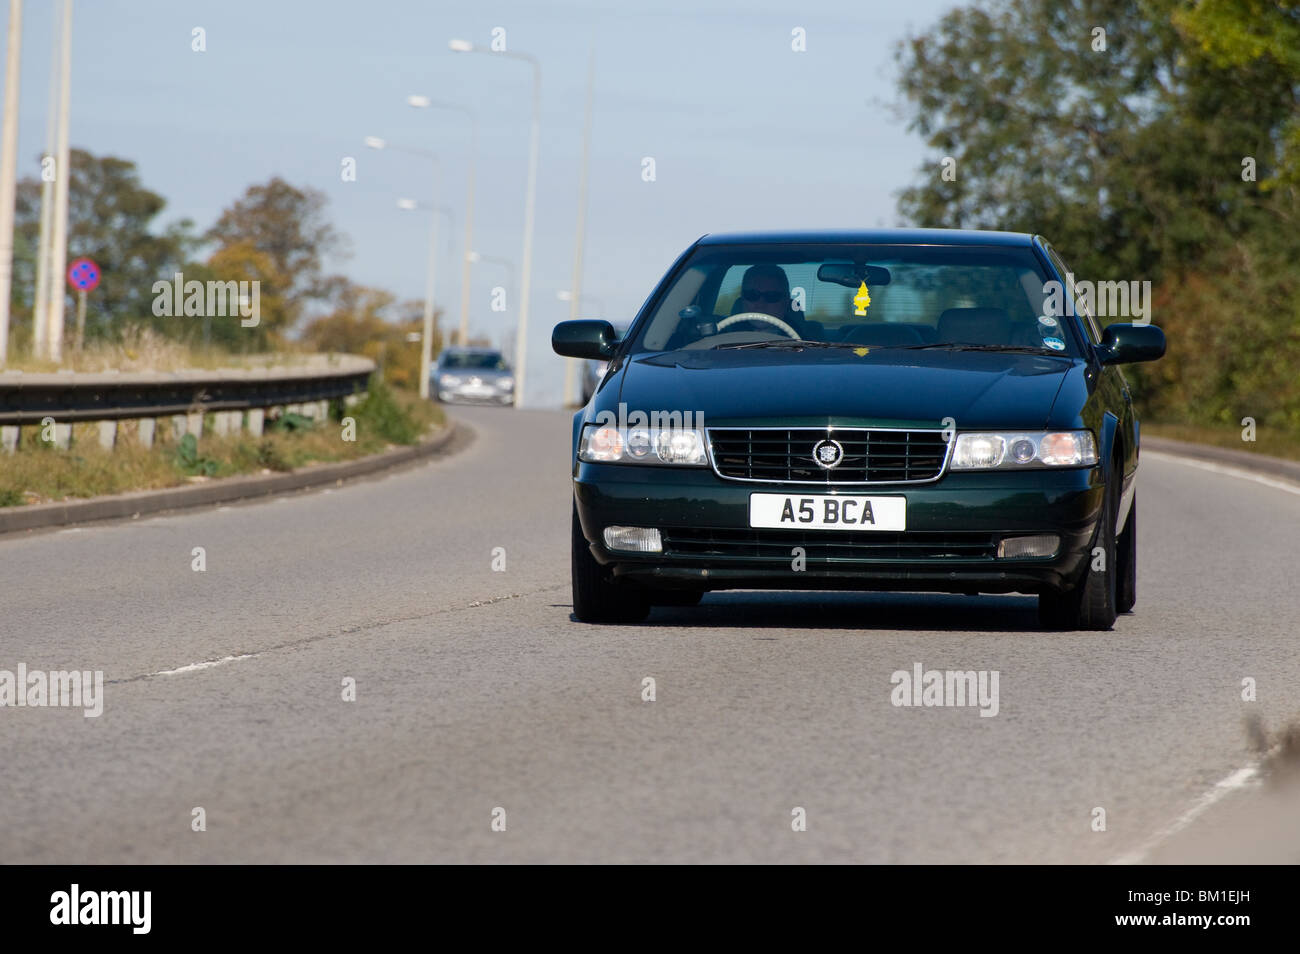 Car being driven on a dual carriageway in England. - Stock Image